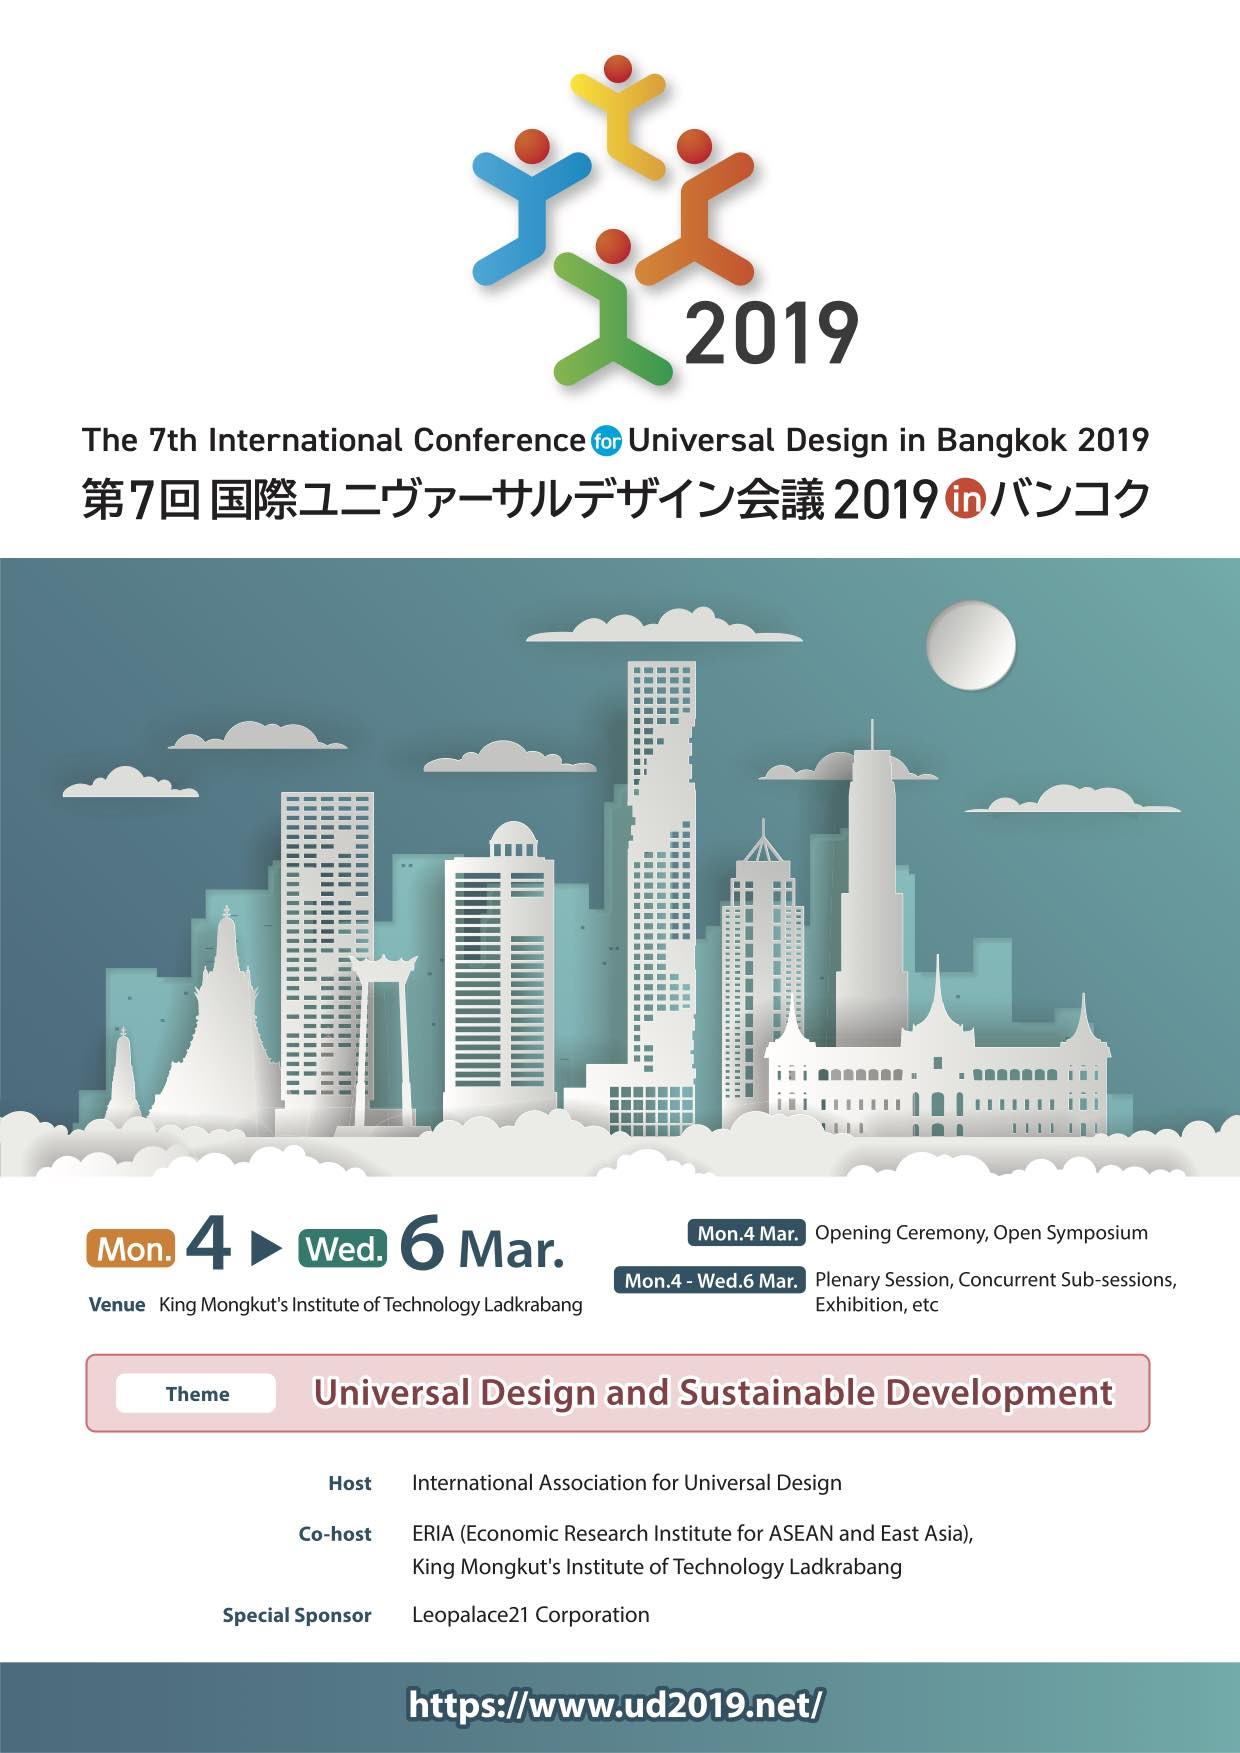 Flyer for the 7th International Conference for Universal Design in Bangkok, Thailand, from March 4 to March 6. The conference theme, 'Universal Design and Sustainable Development' is highlighted.